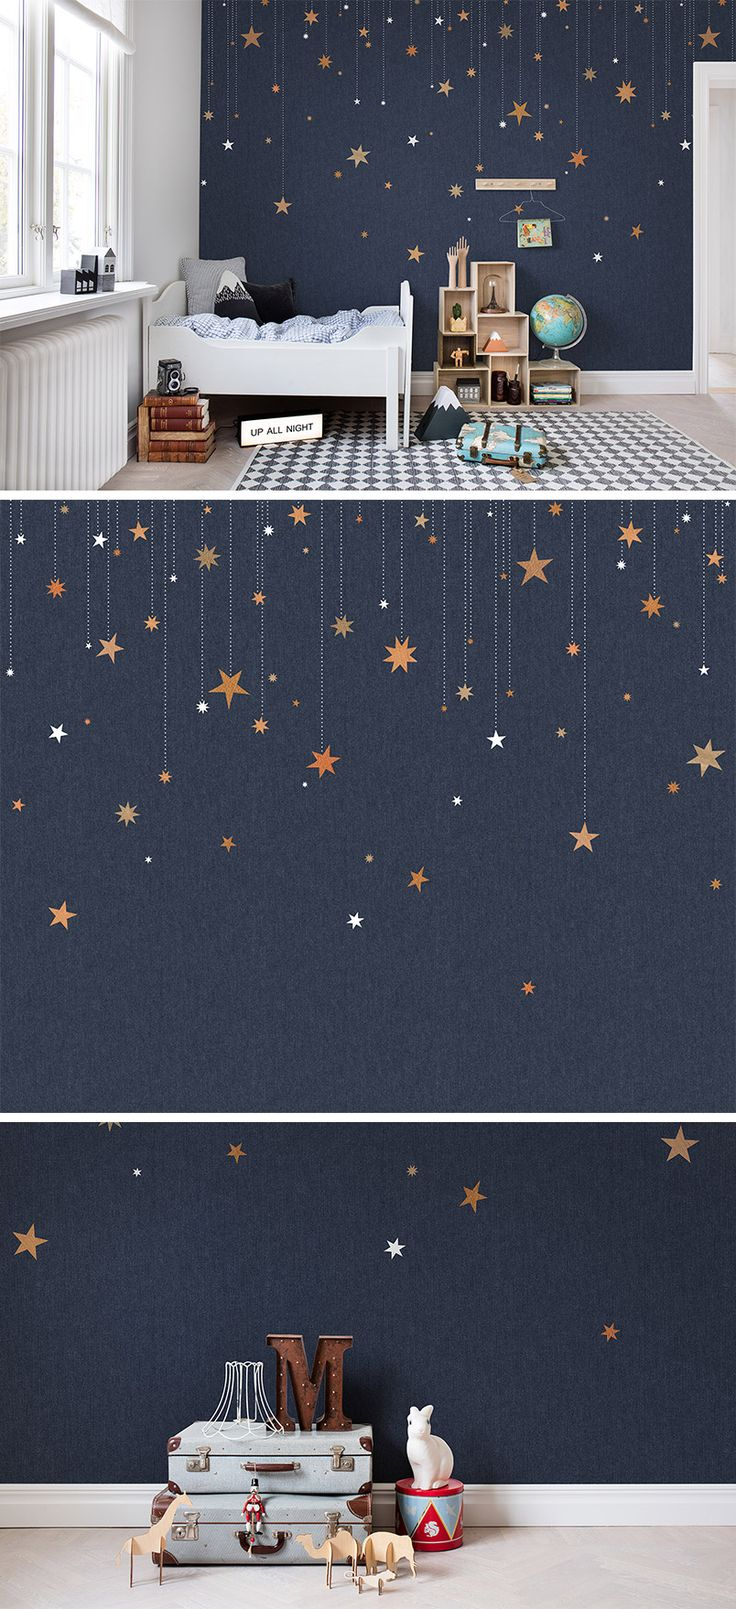 best 25 wall murals ideas on pinterest wall murals for bedrooms stargazing nursery wallpaperwallpaper forwall murals